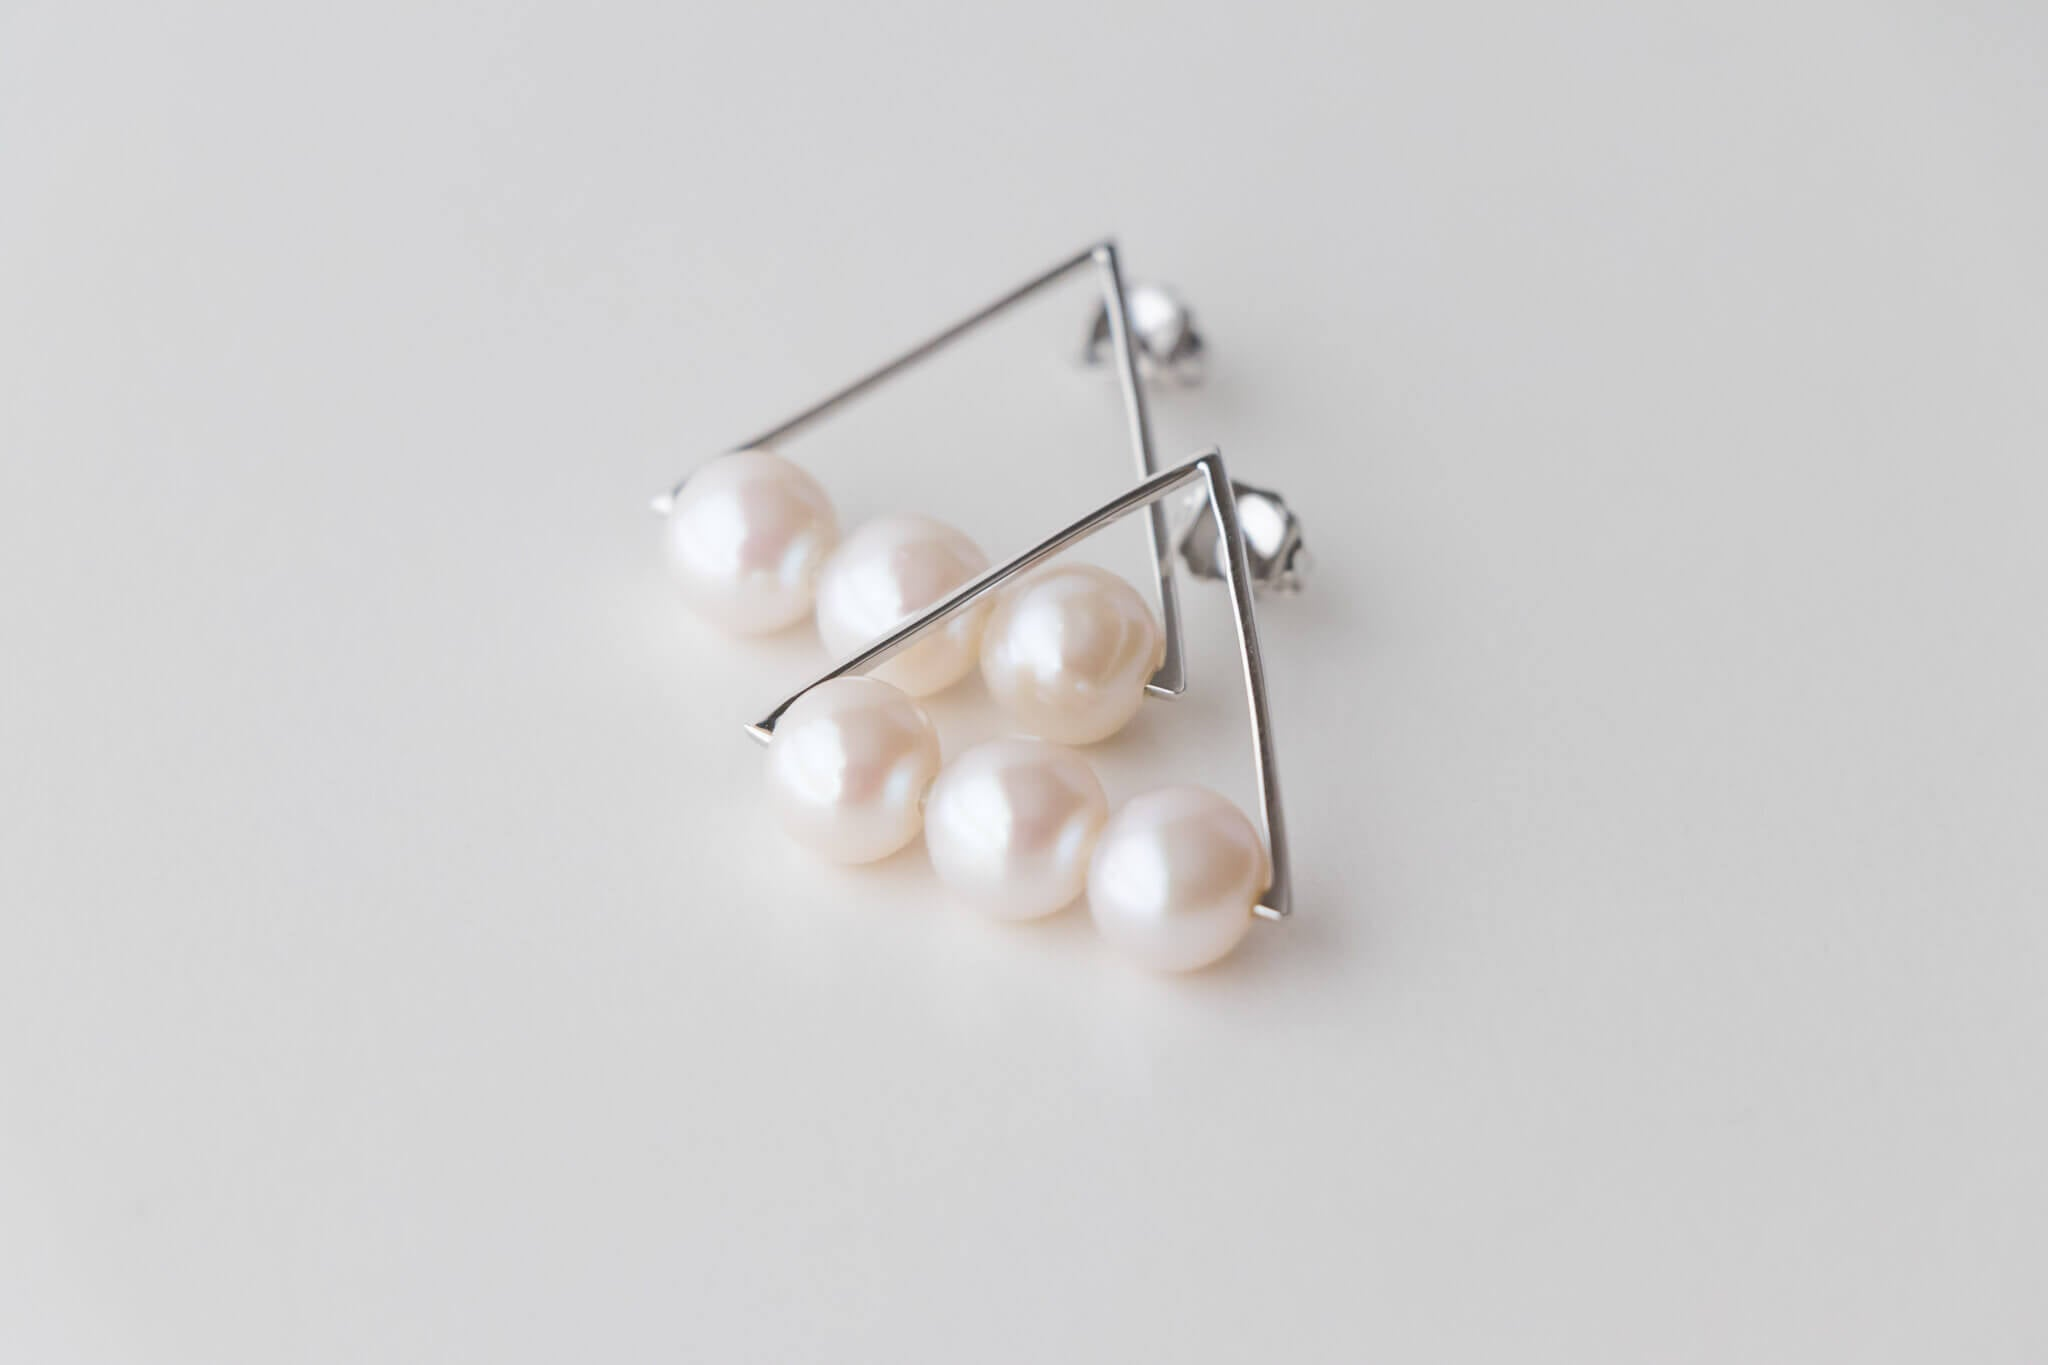 Sterling Silver Triangle Earrings with 7.5-8mm White Freshwater Pearls